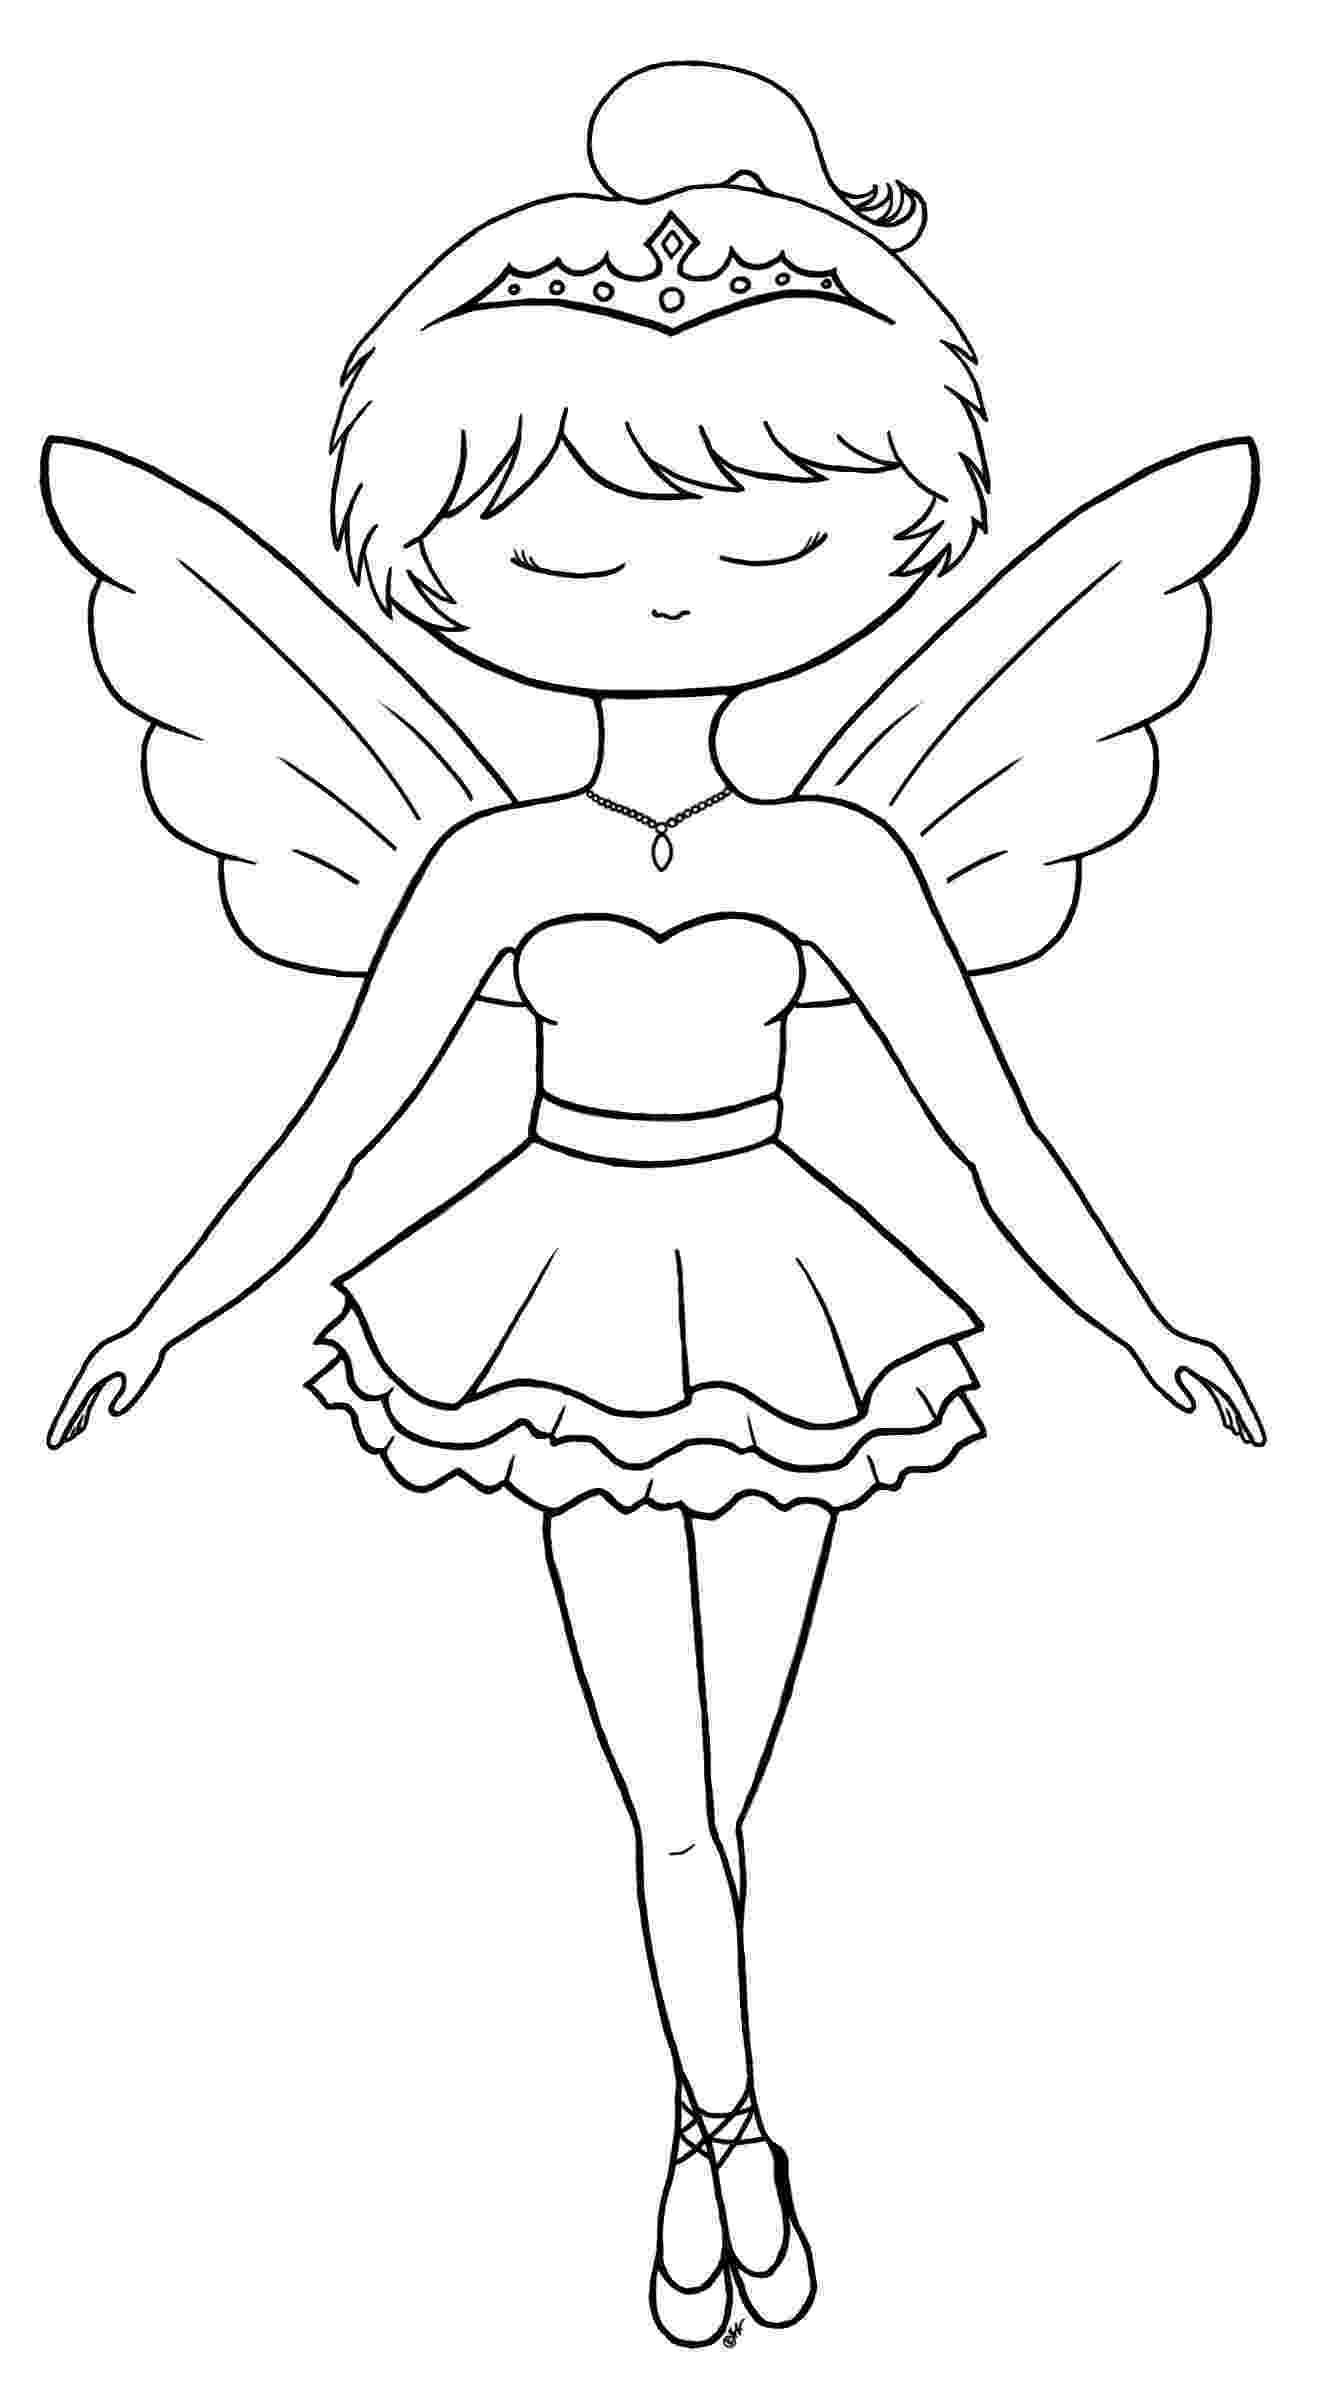 ballerina coloring pictures ballerina coloring pages for childrens printable for free pictures coloring ballerina